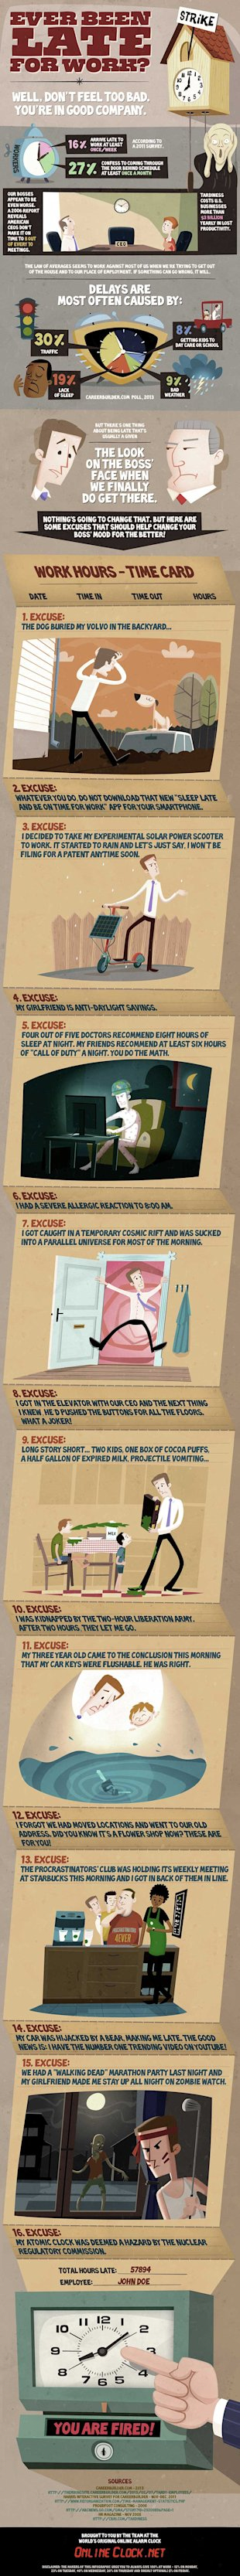 How to Get Away With Being Late For Work image late for work infographic